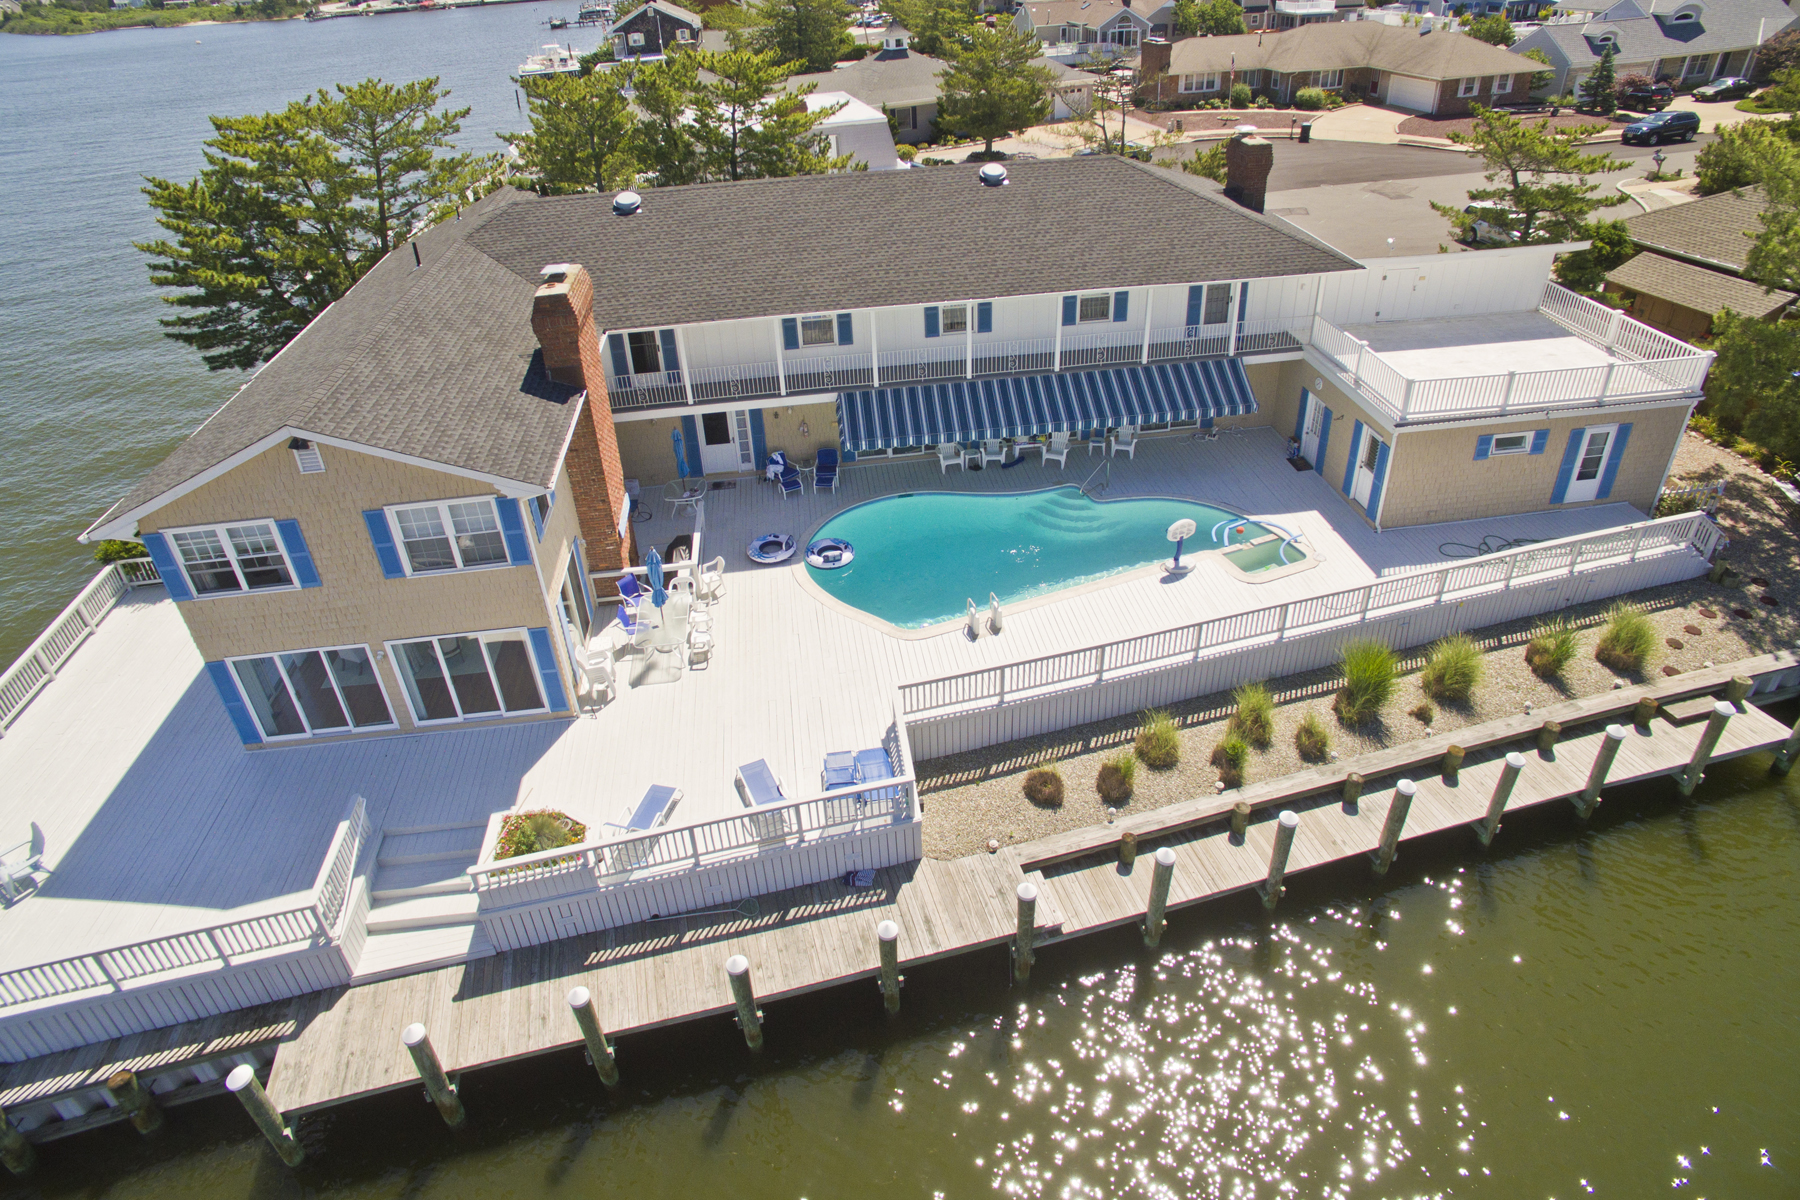 Casa Unifamiliar por un Venta en Magnificent Mantoloking Shores Waterfront 195 Buccaneer Way Mantoloking, Nueva Jersey 08739 Estados Unidos